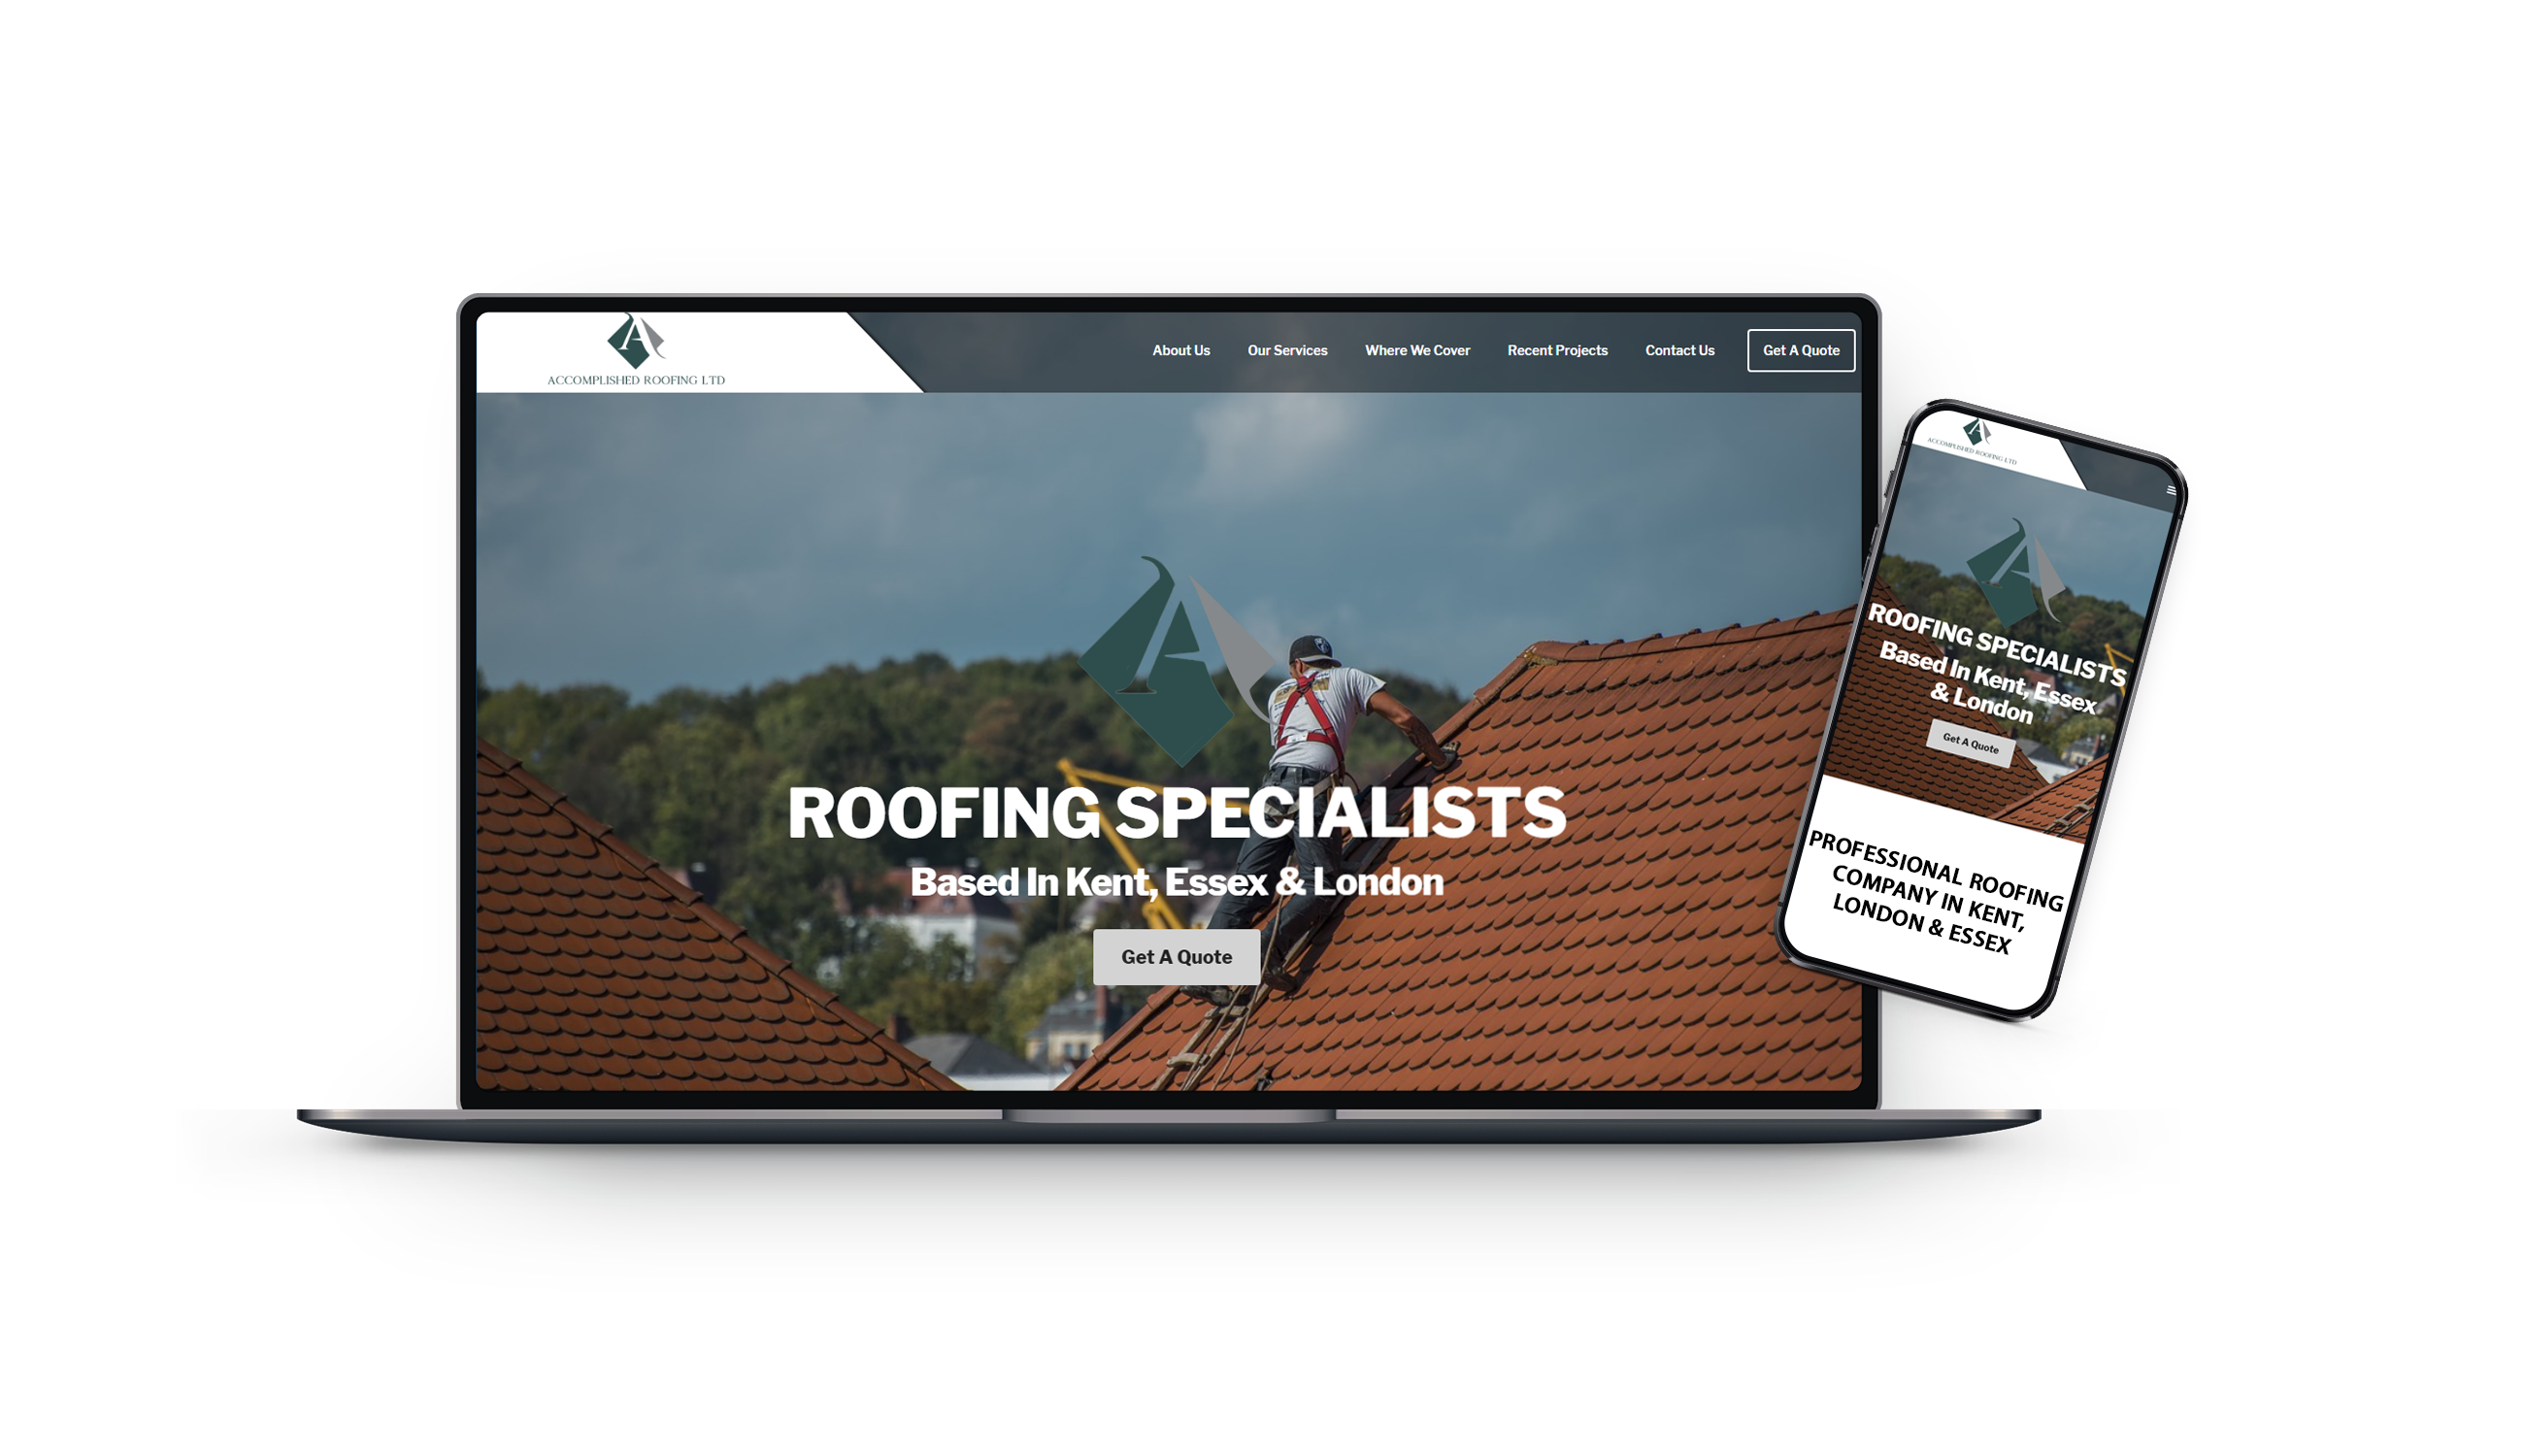 roofing company specialists kent london and essex